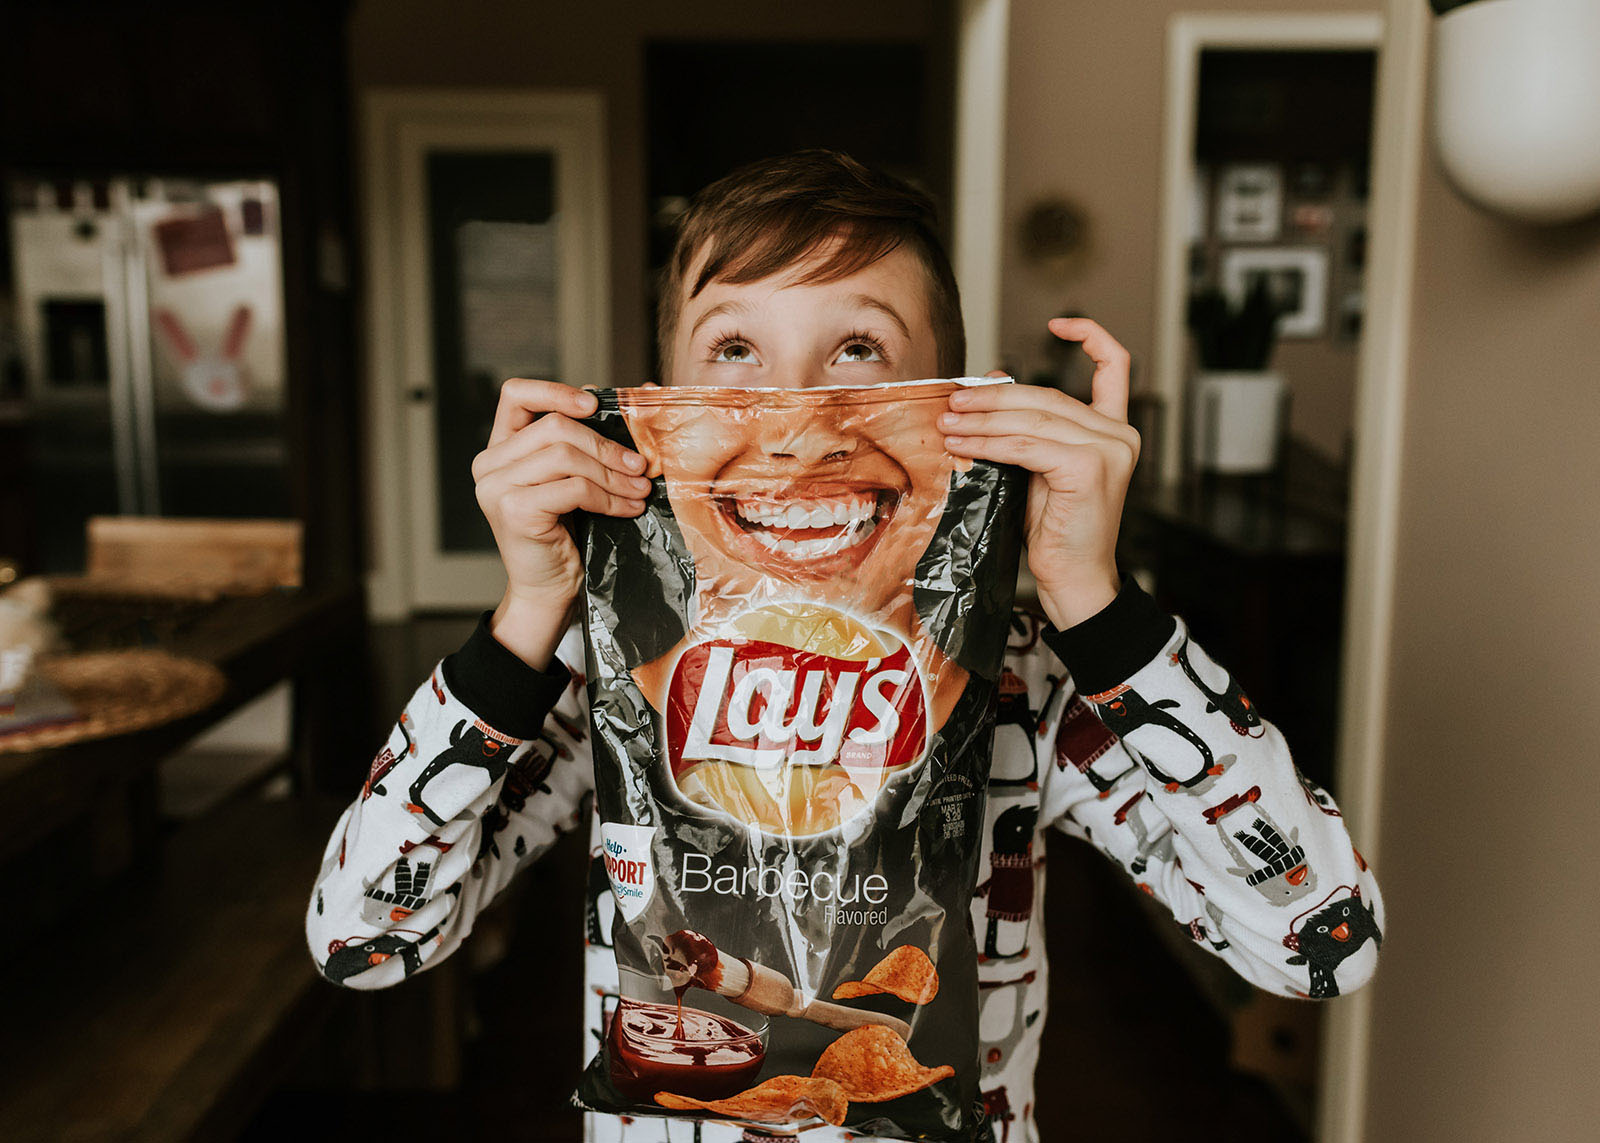 A boy holds up a bag of potato chips with a smile for a hilarious image